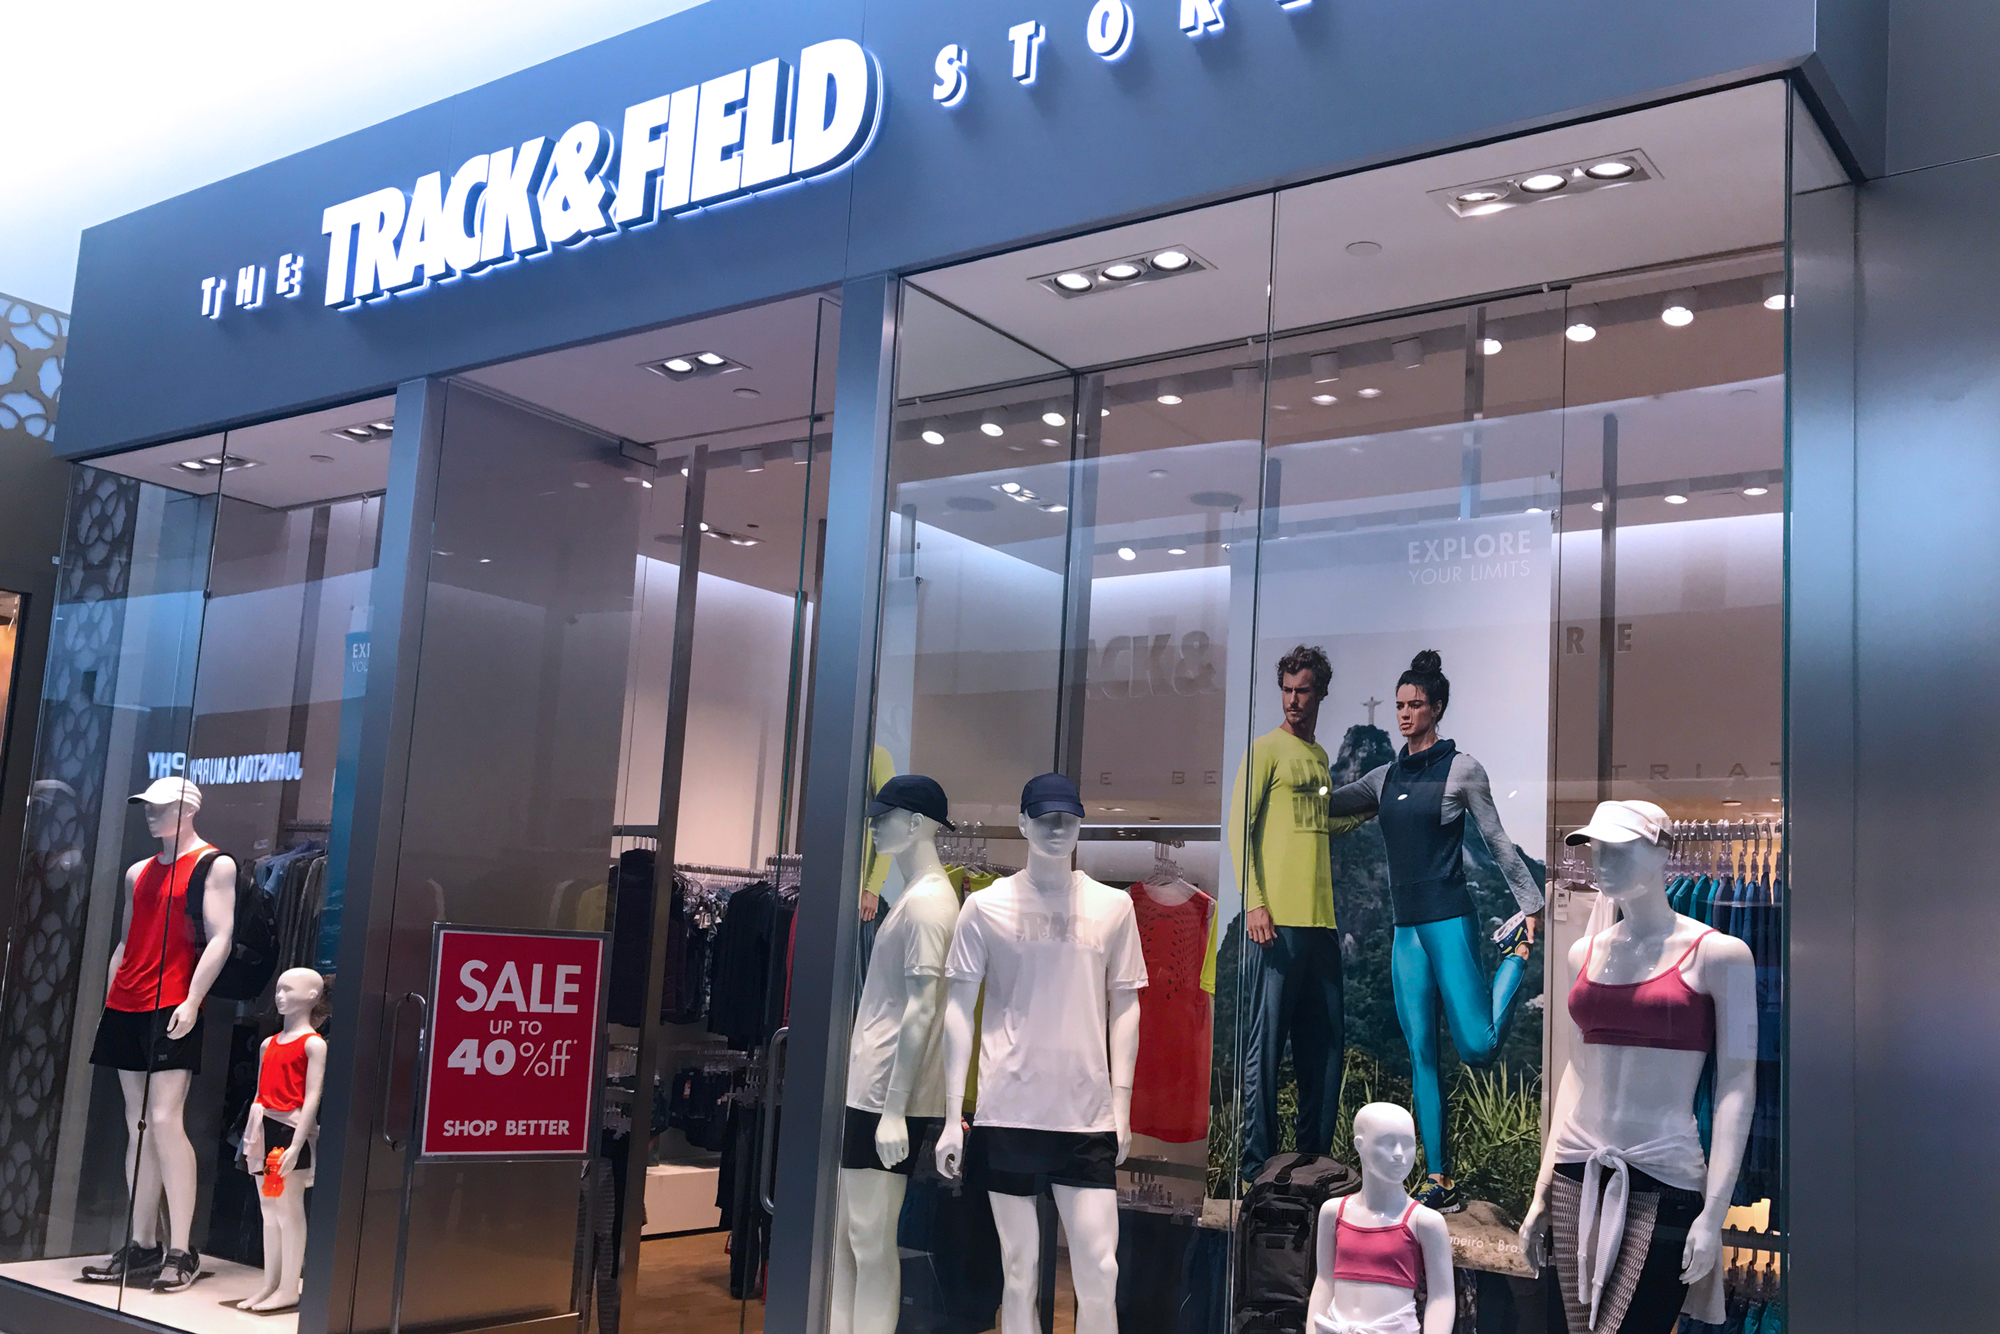 Track & Field Store